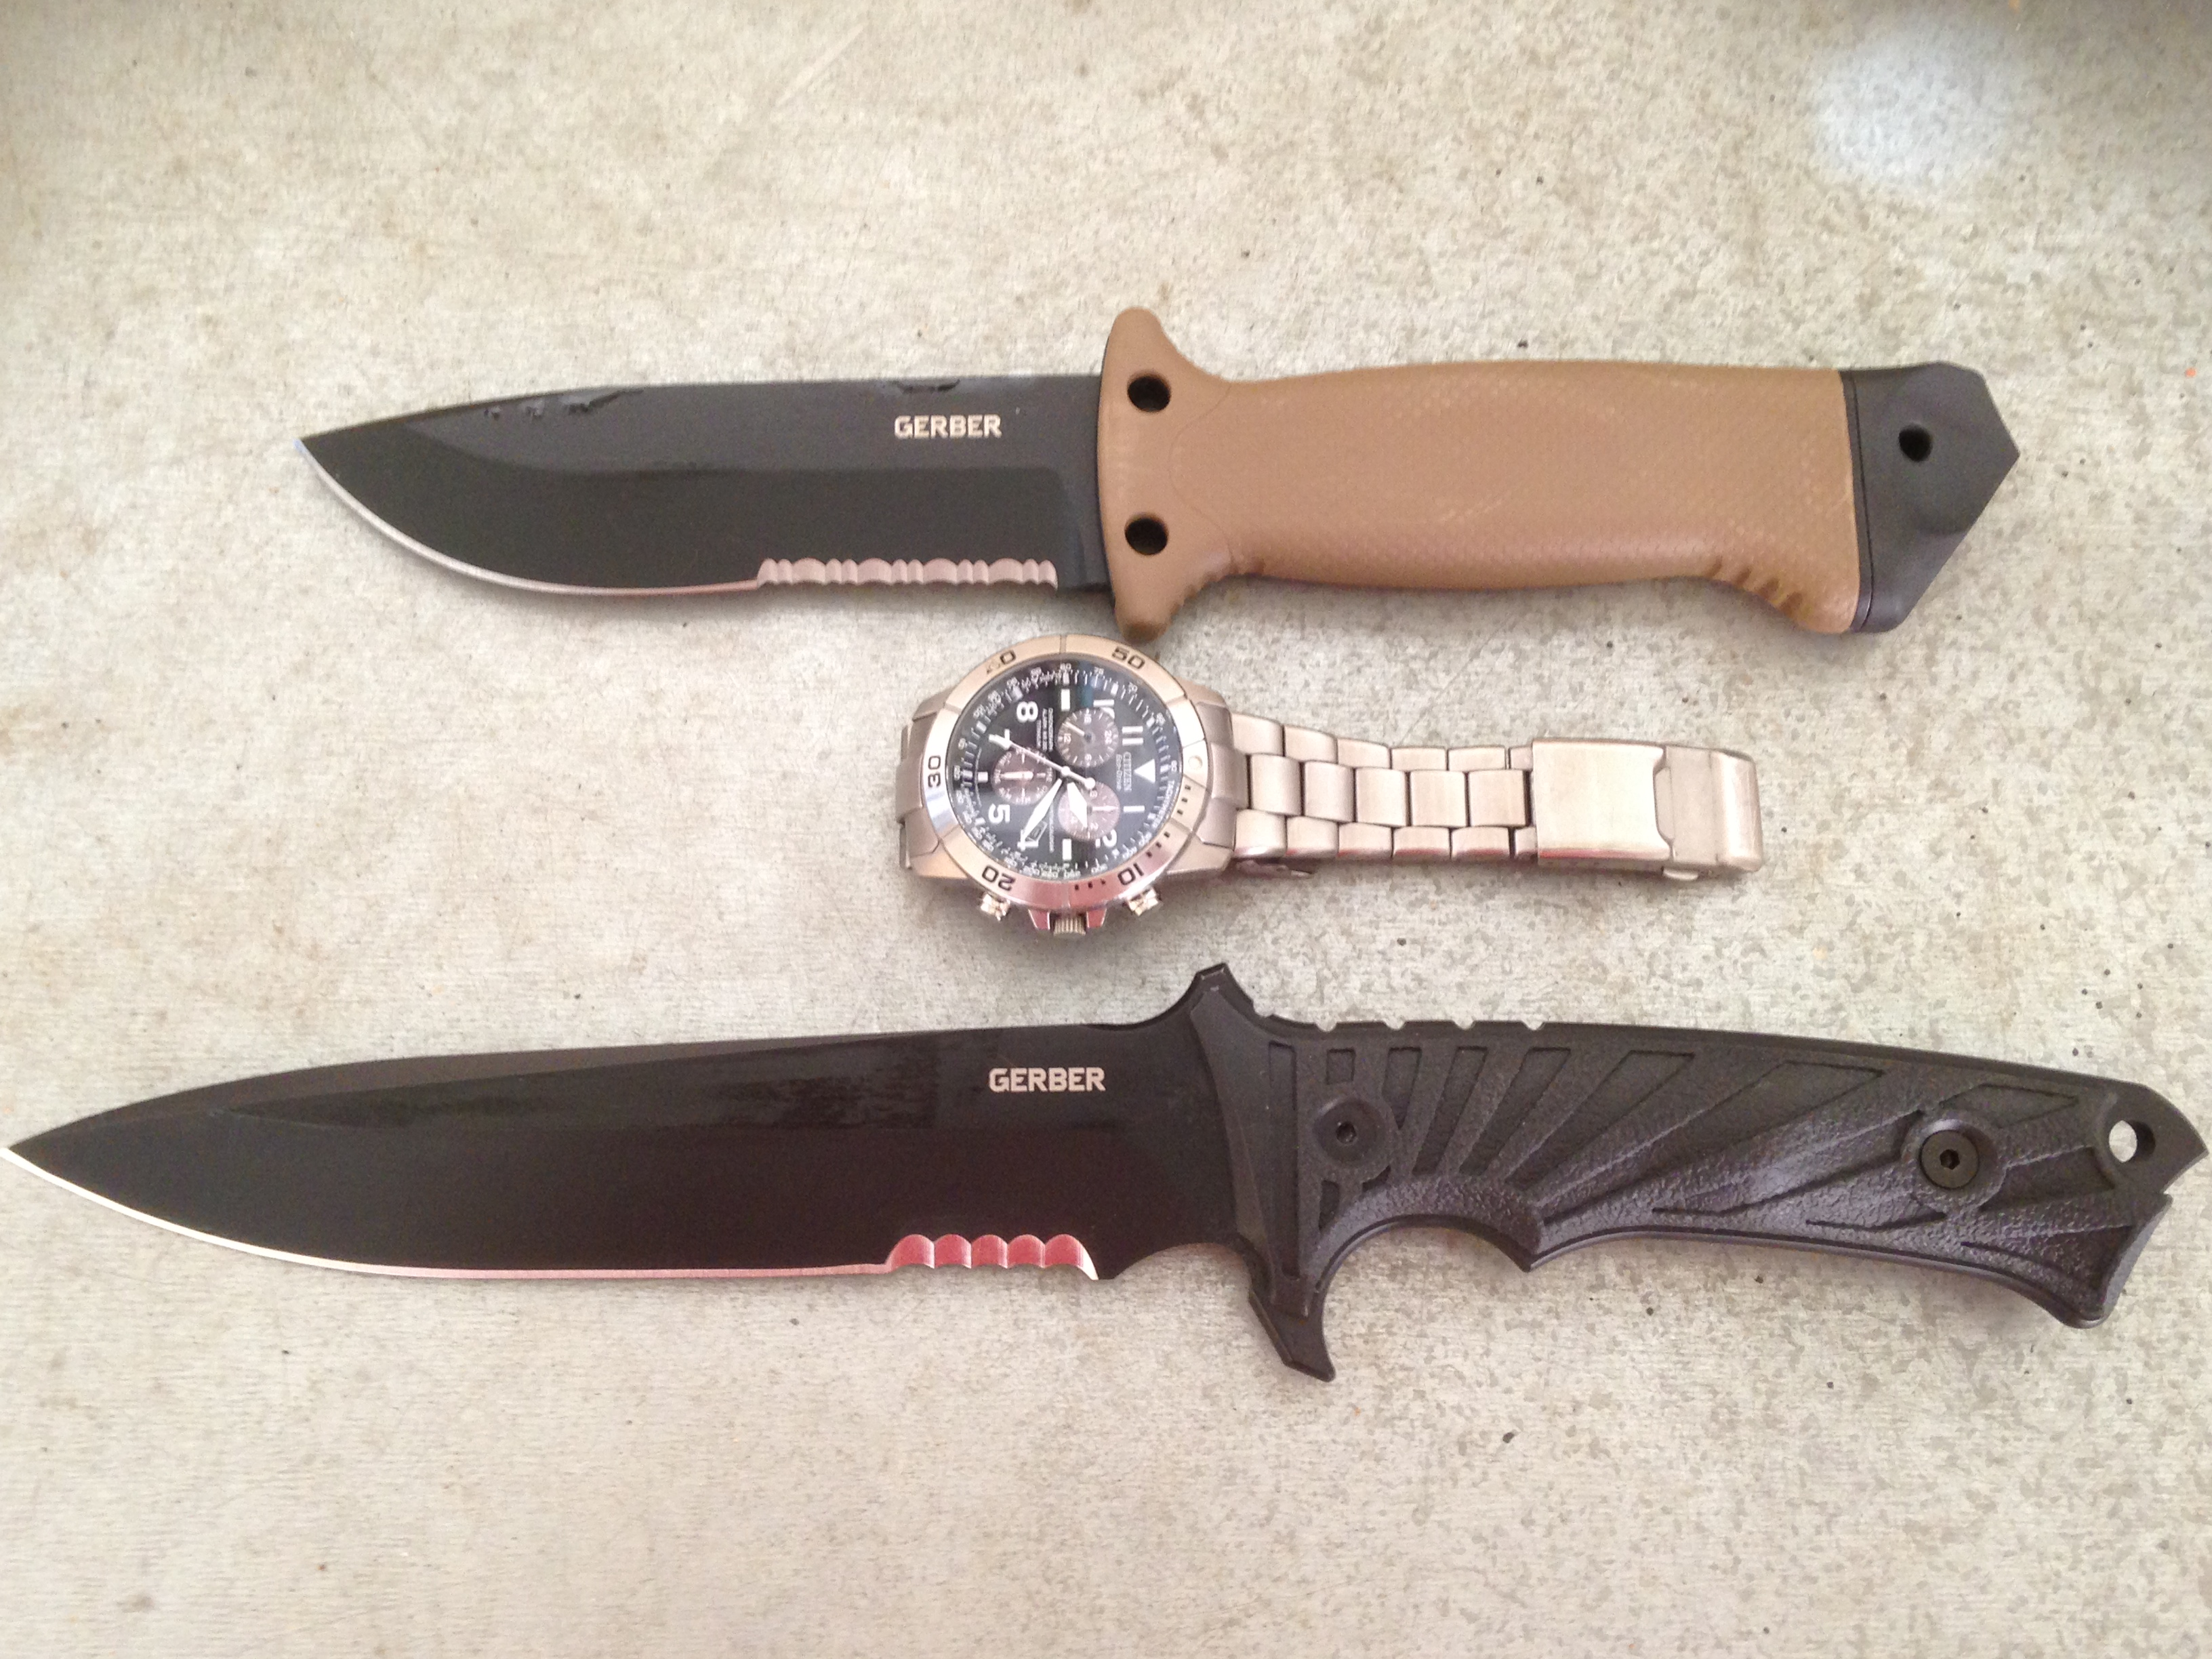 Survival knife vs combat knife kills